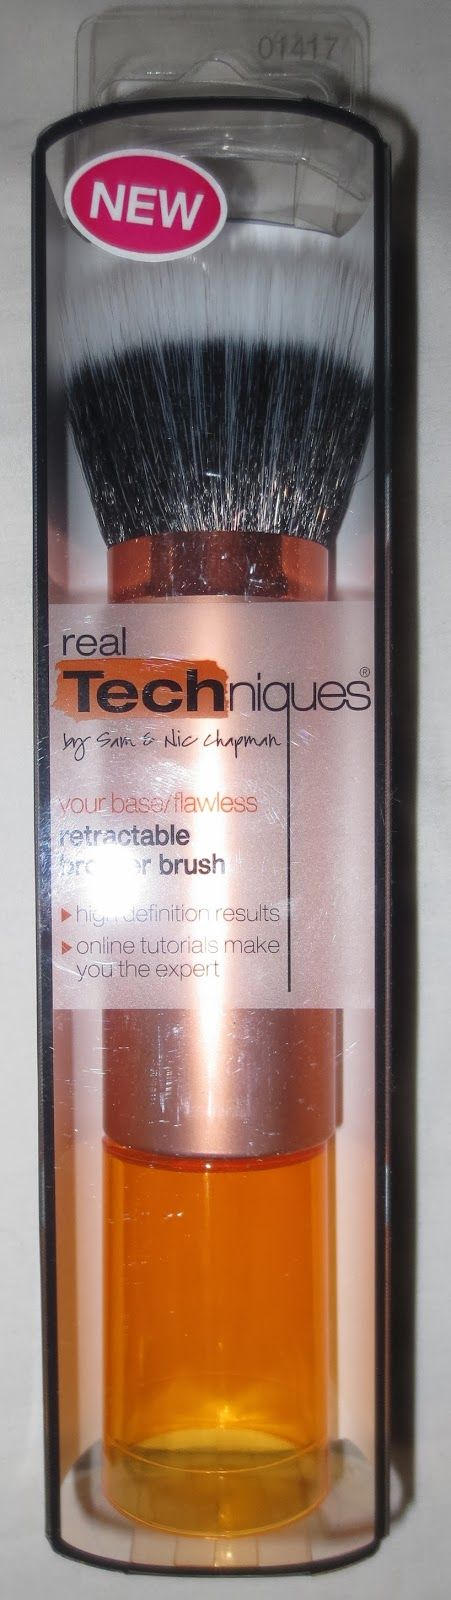 Real Techniques Retractable Bronzer Brush @Farleyco Canada